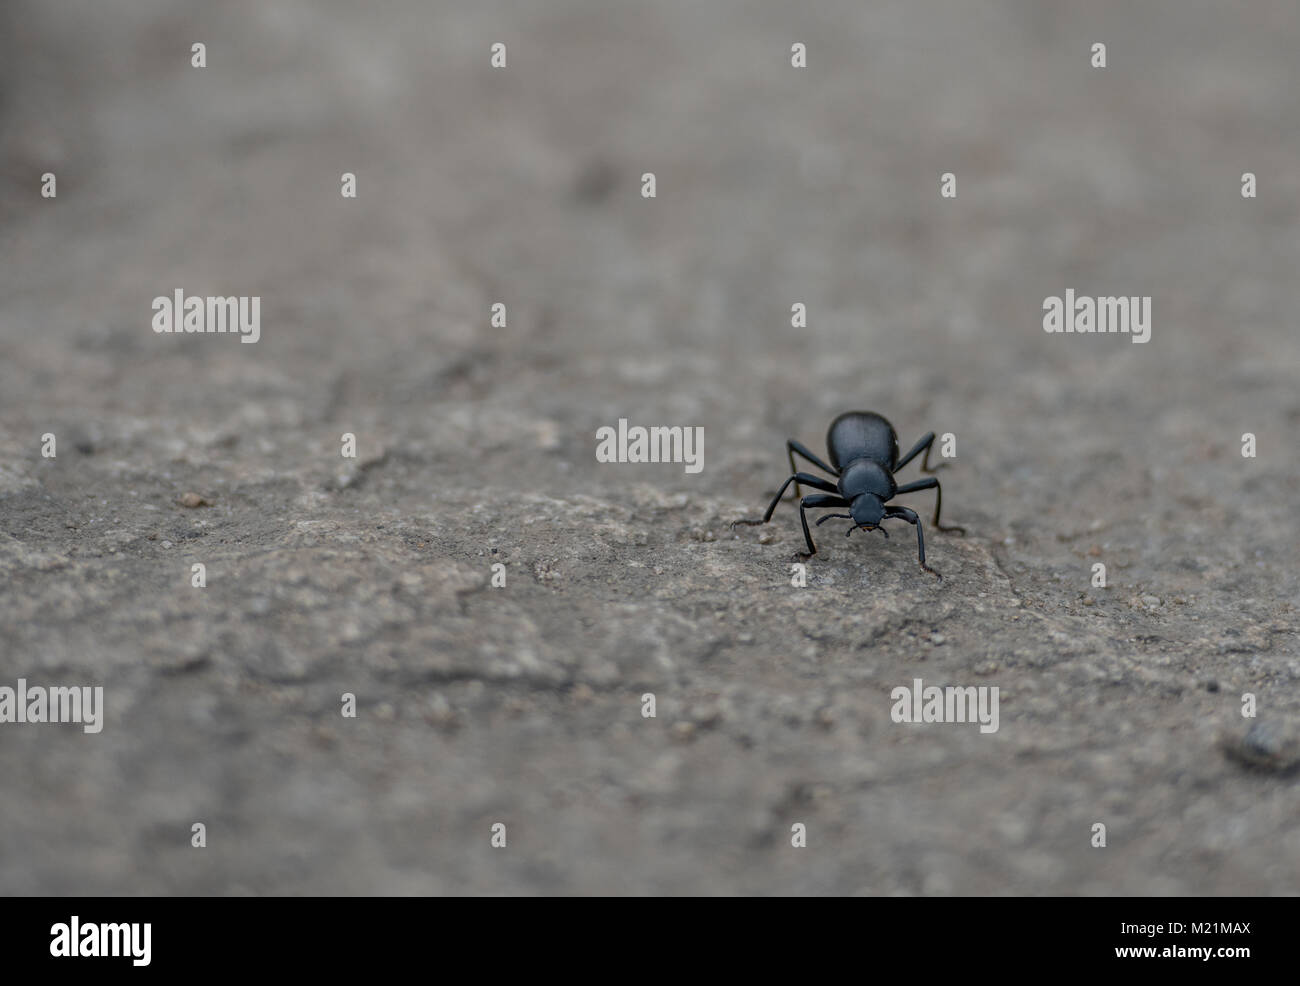 Small Black Insect Crawls on Sandy Ground - Stock Image